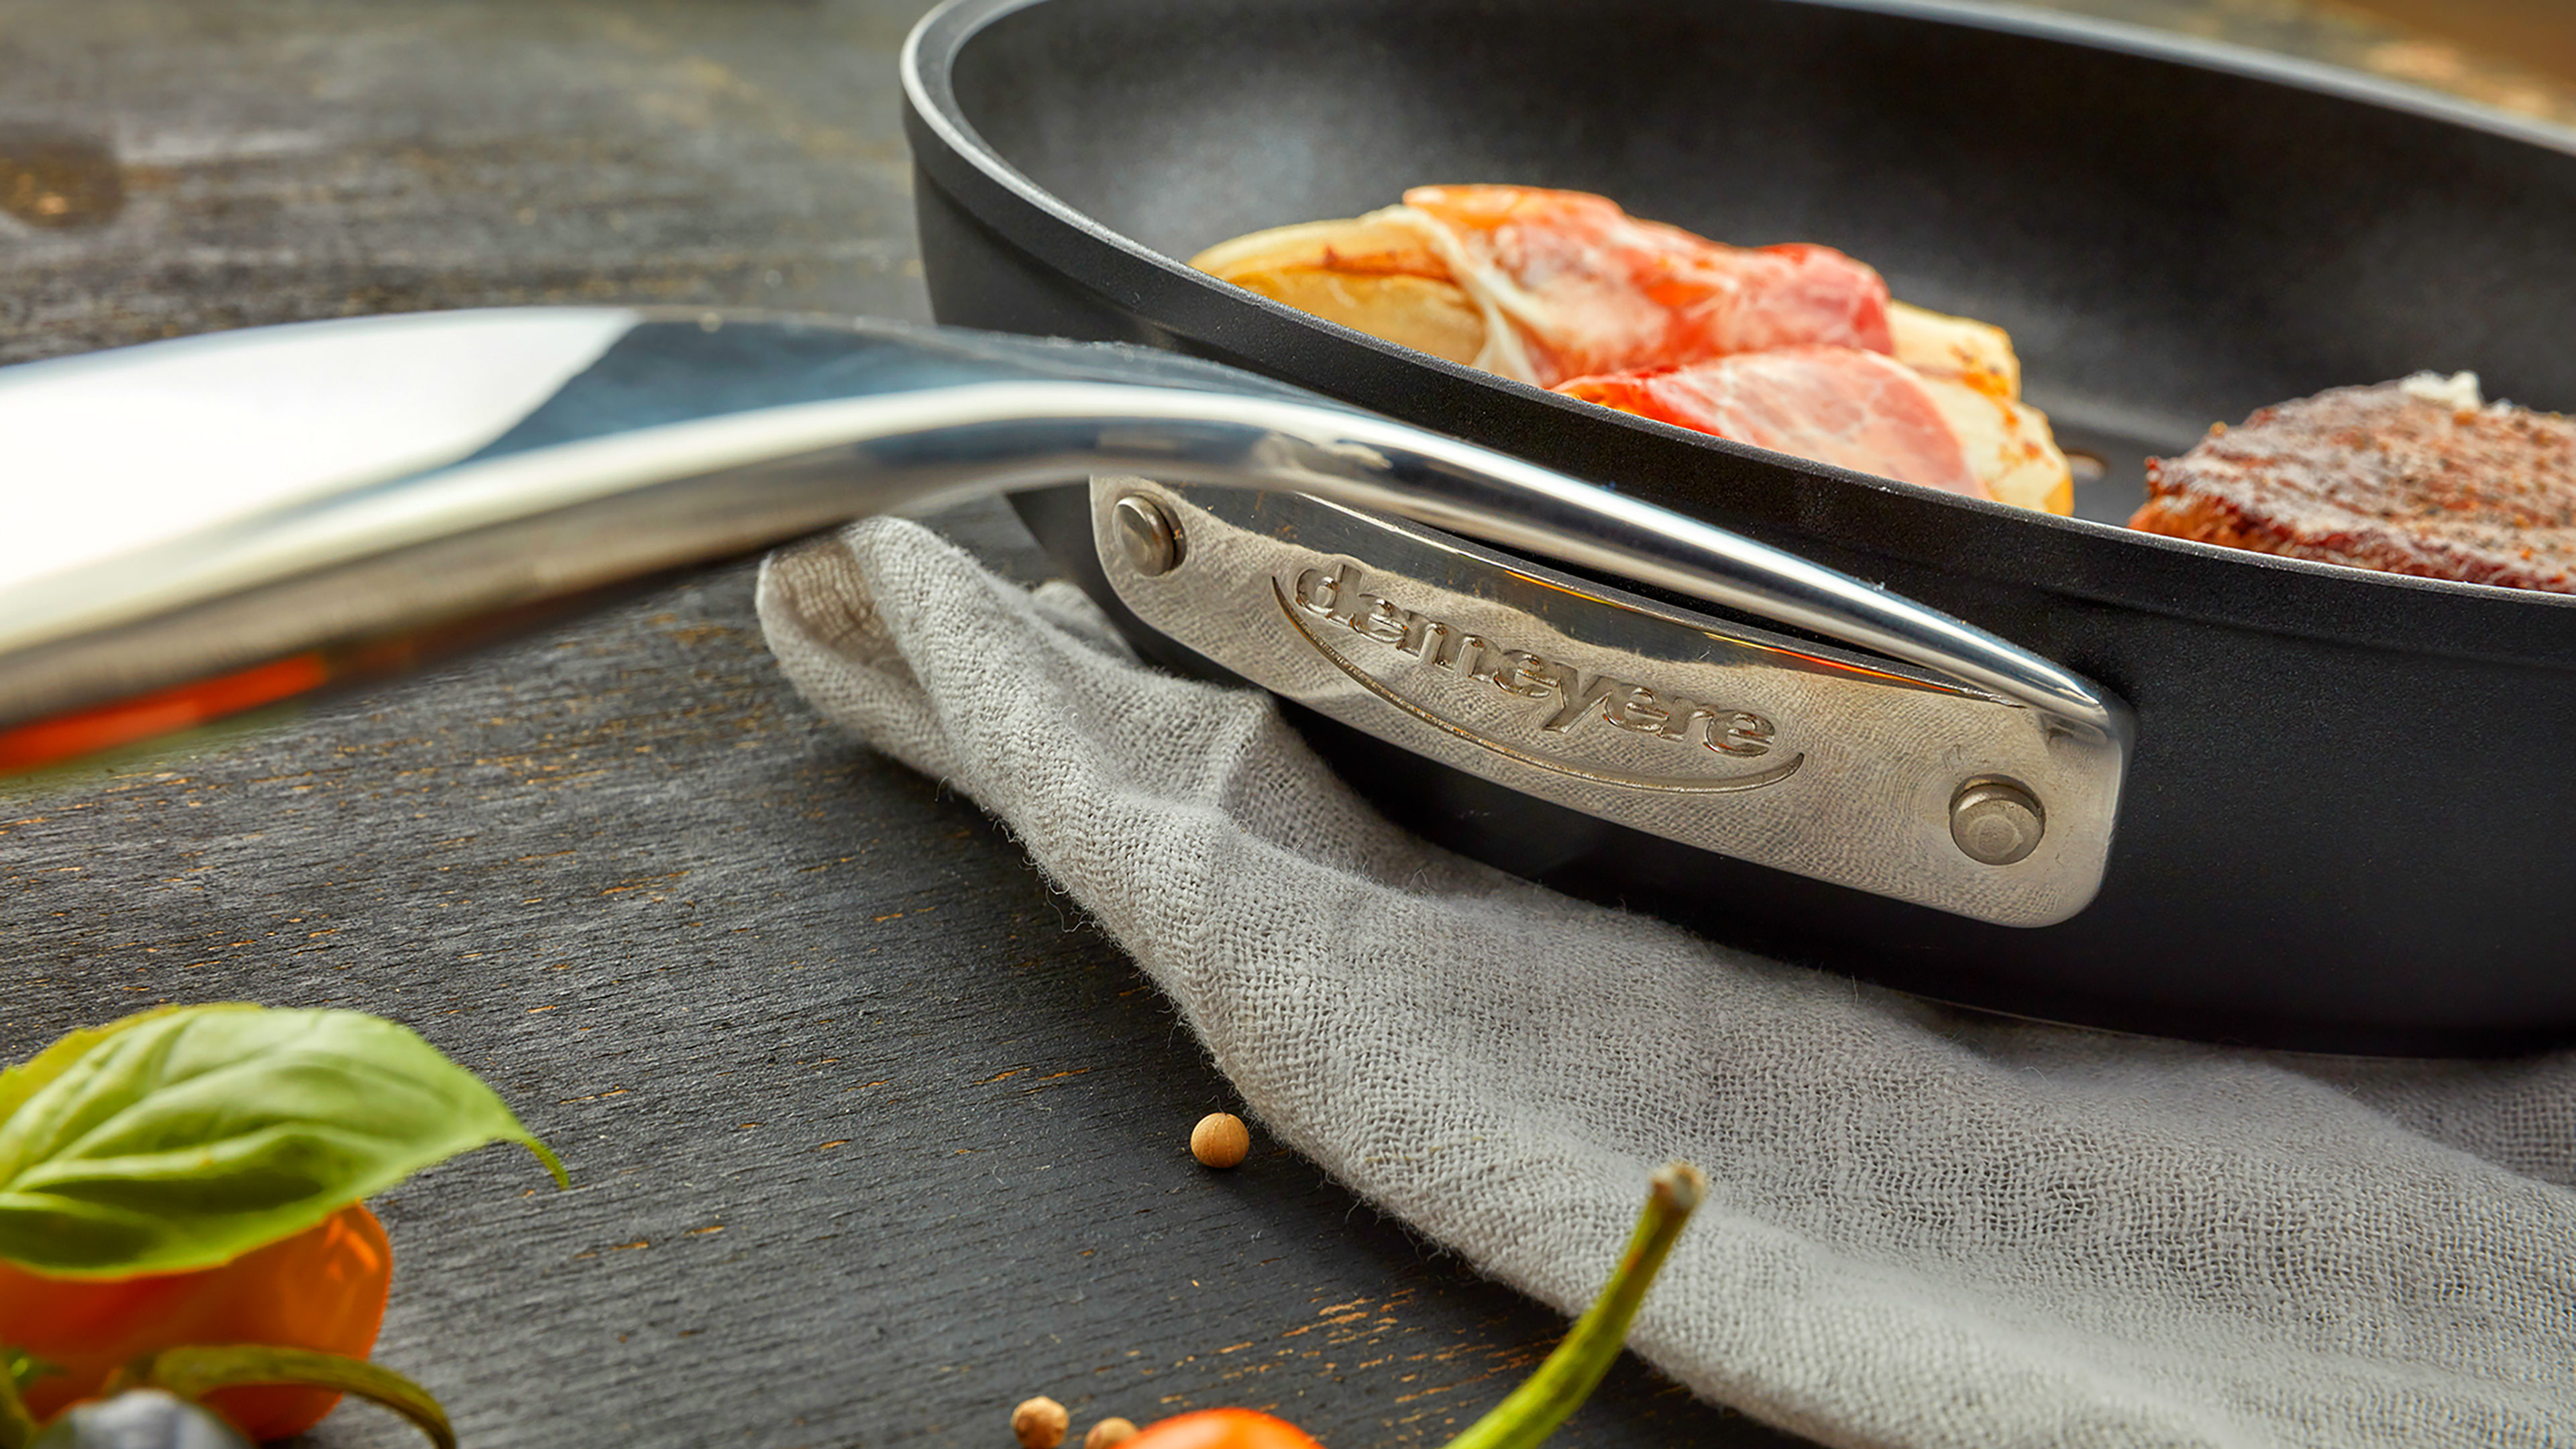 Demeyere Alupro Nonstick Deep Fry Pan 11 Quot Cutlery And More